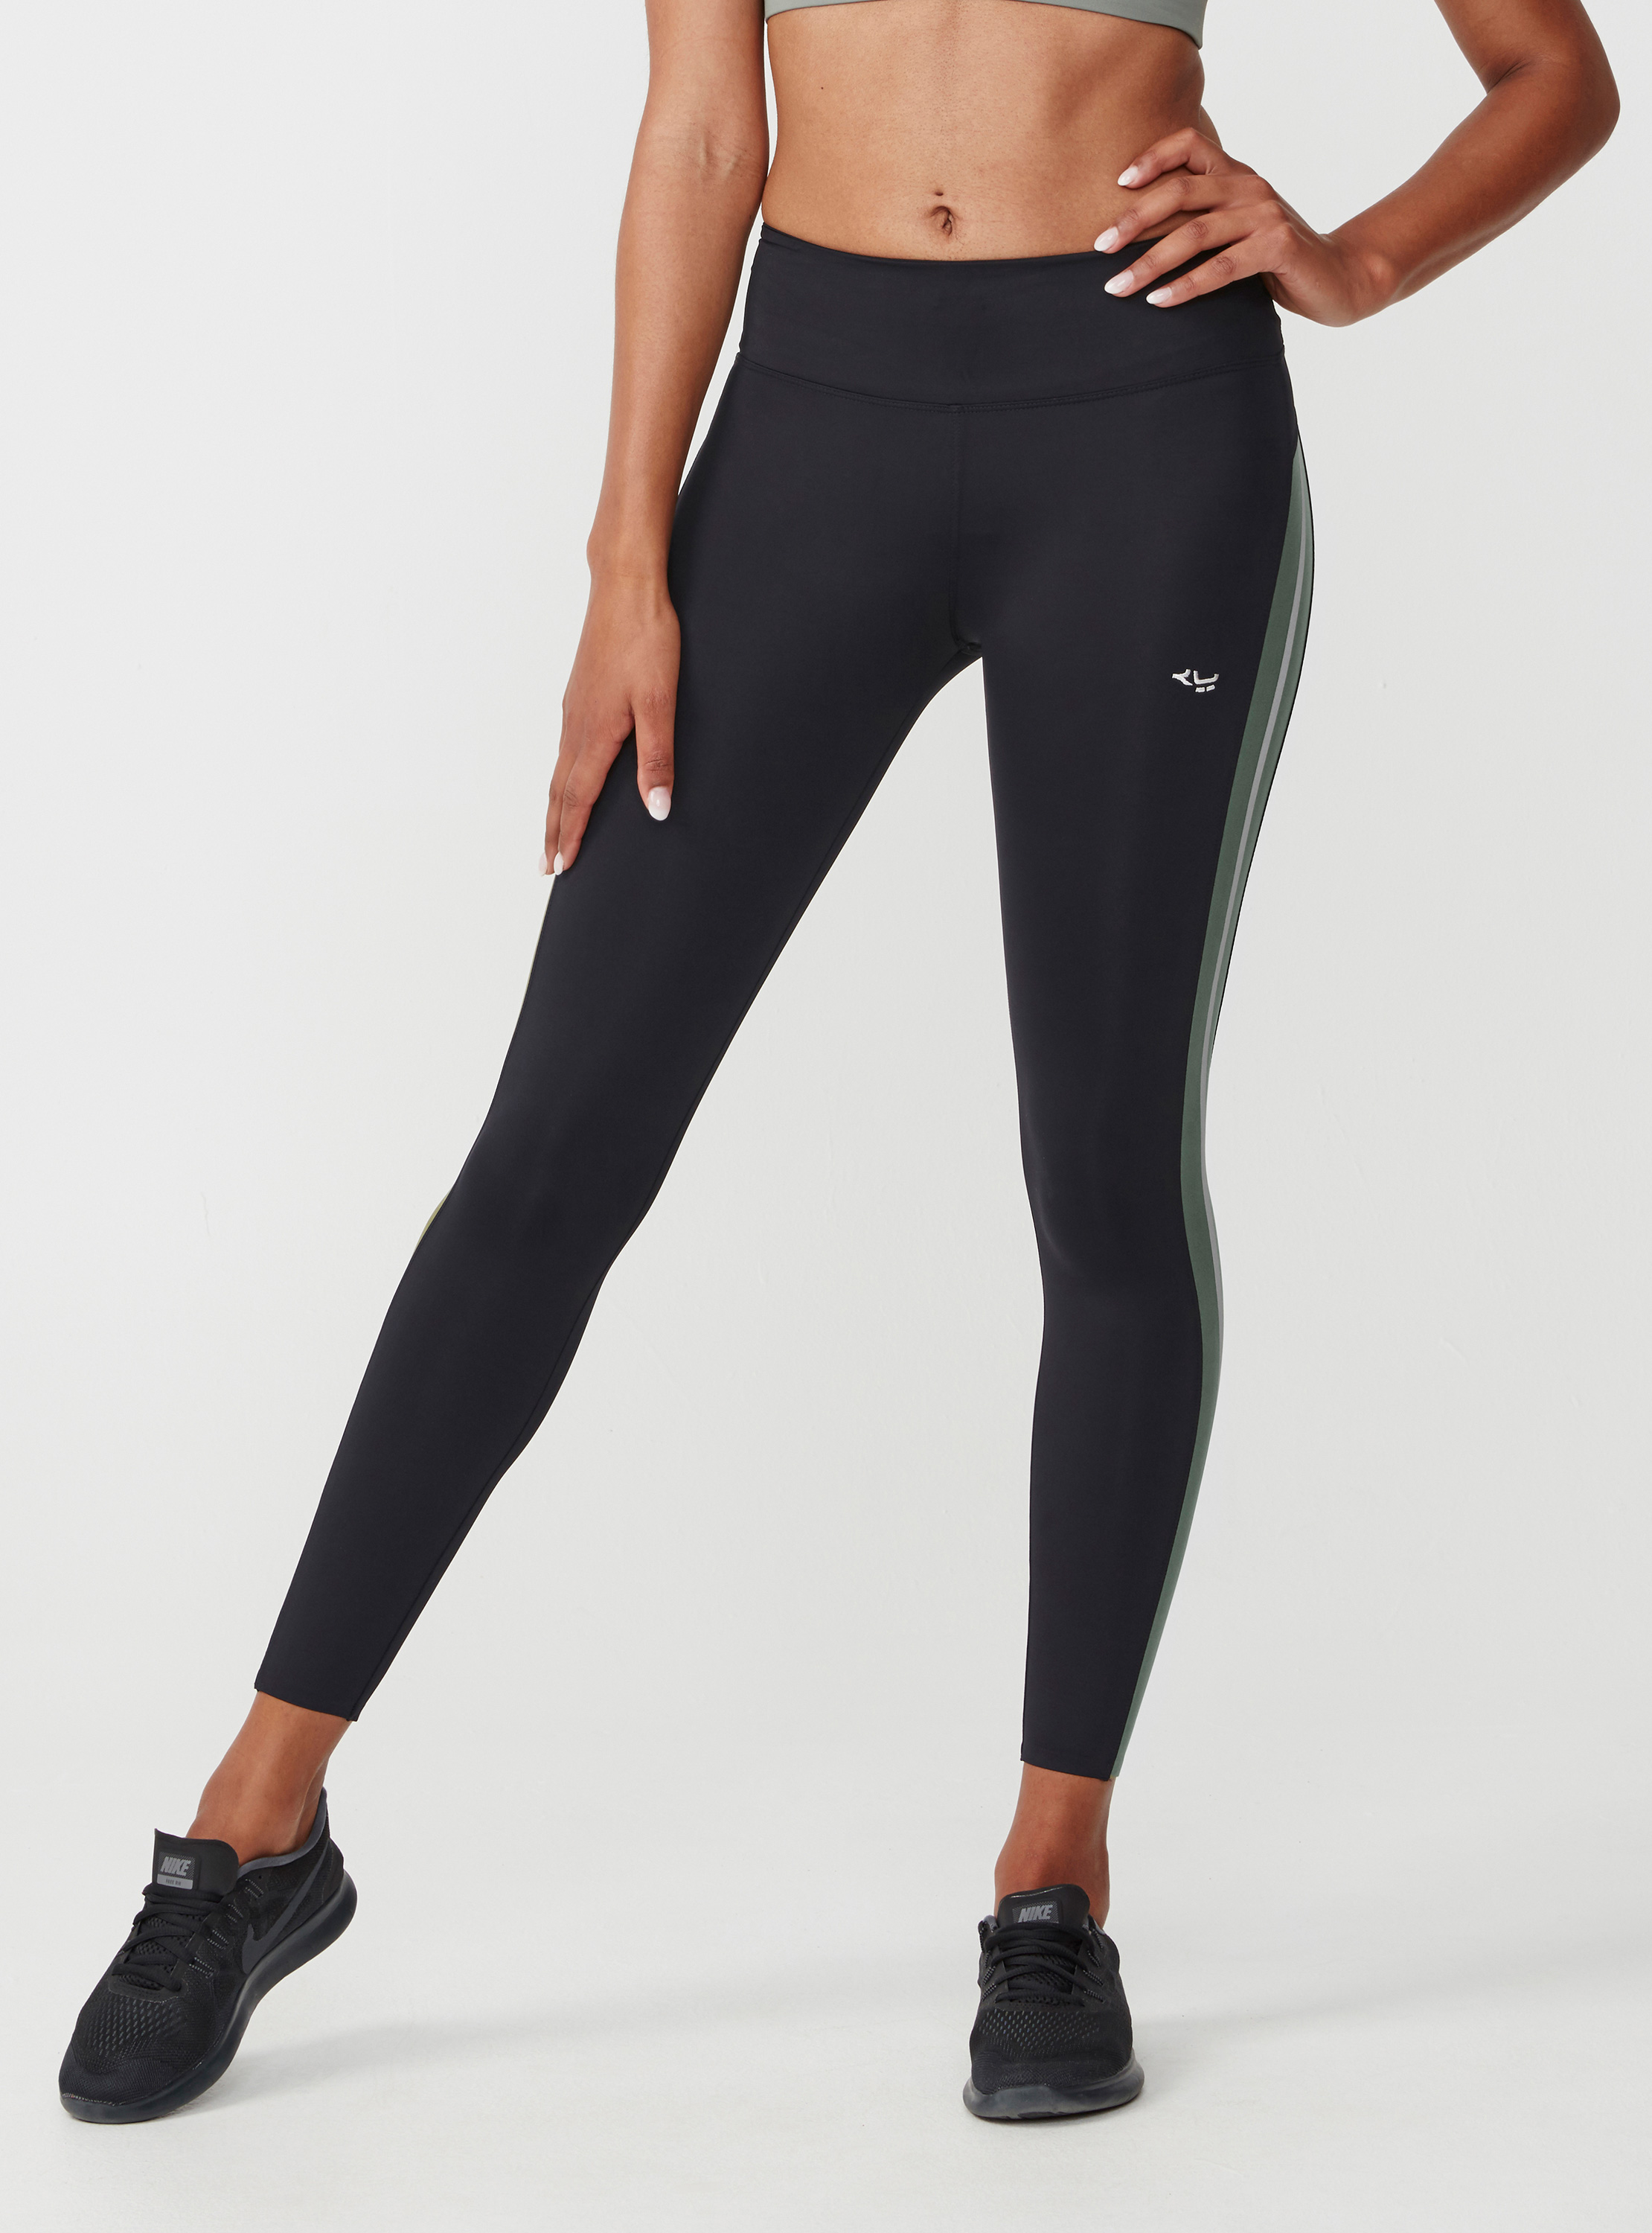 Shaping Sportlegging.Compression Tights Bottoms Active Rohnisch